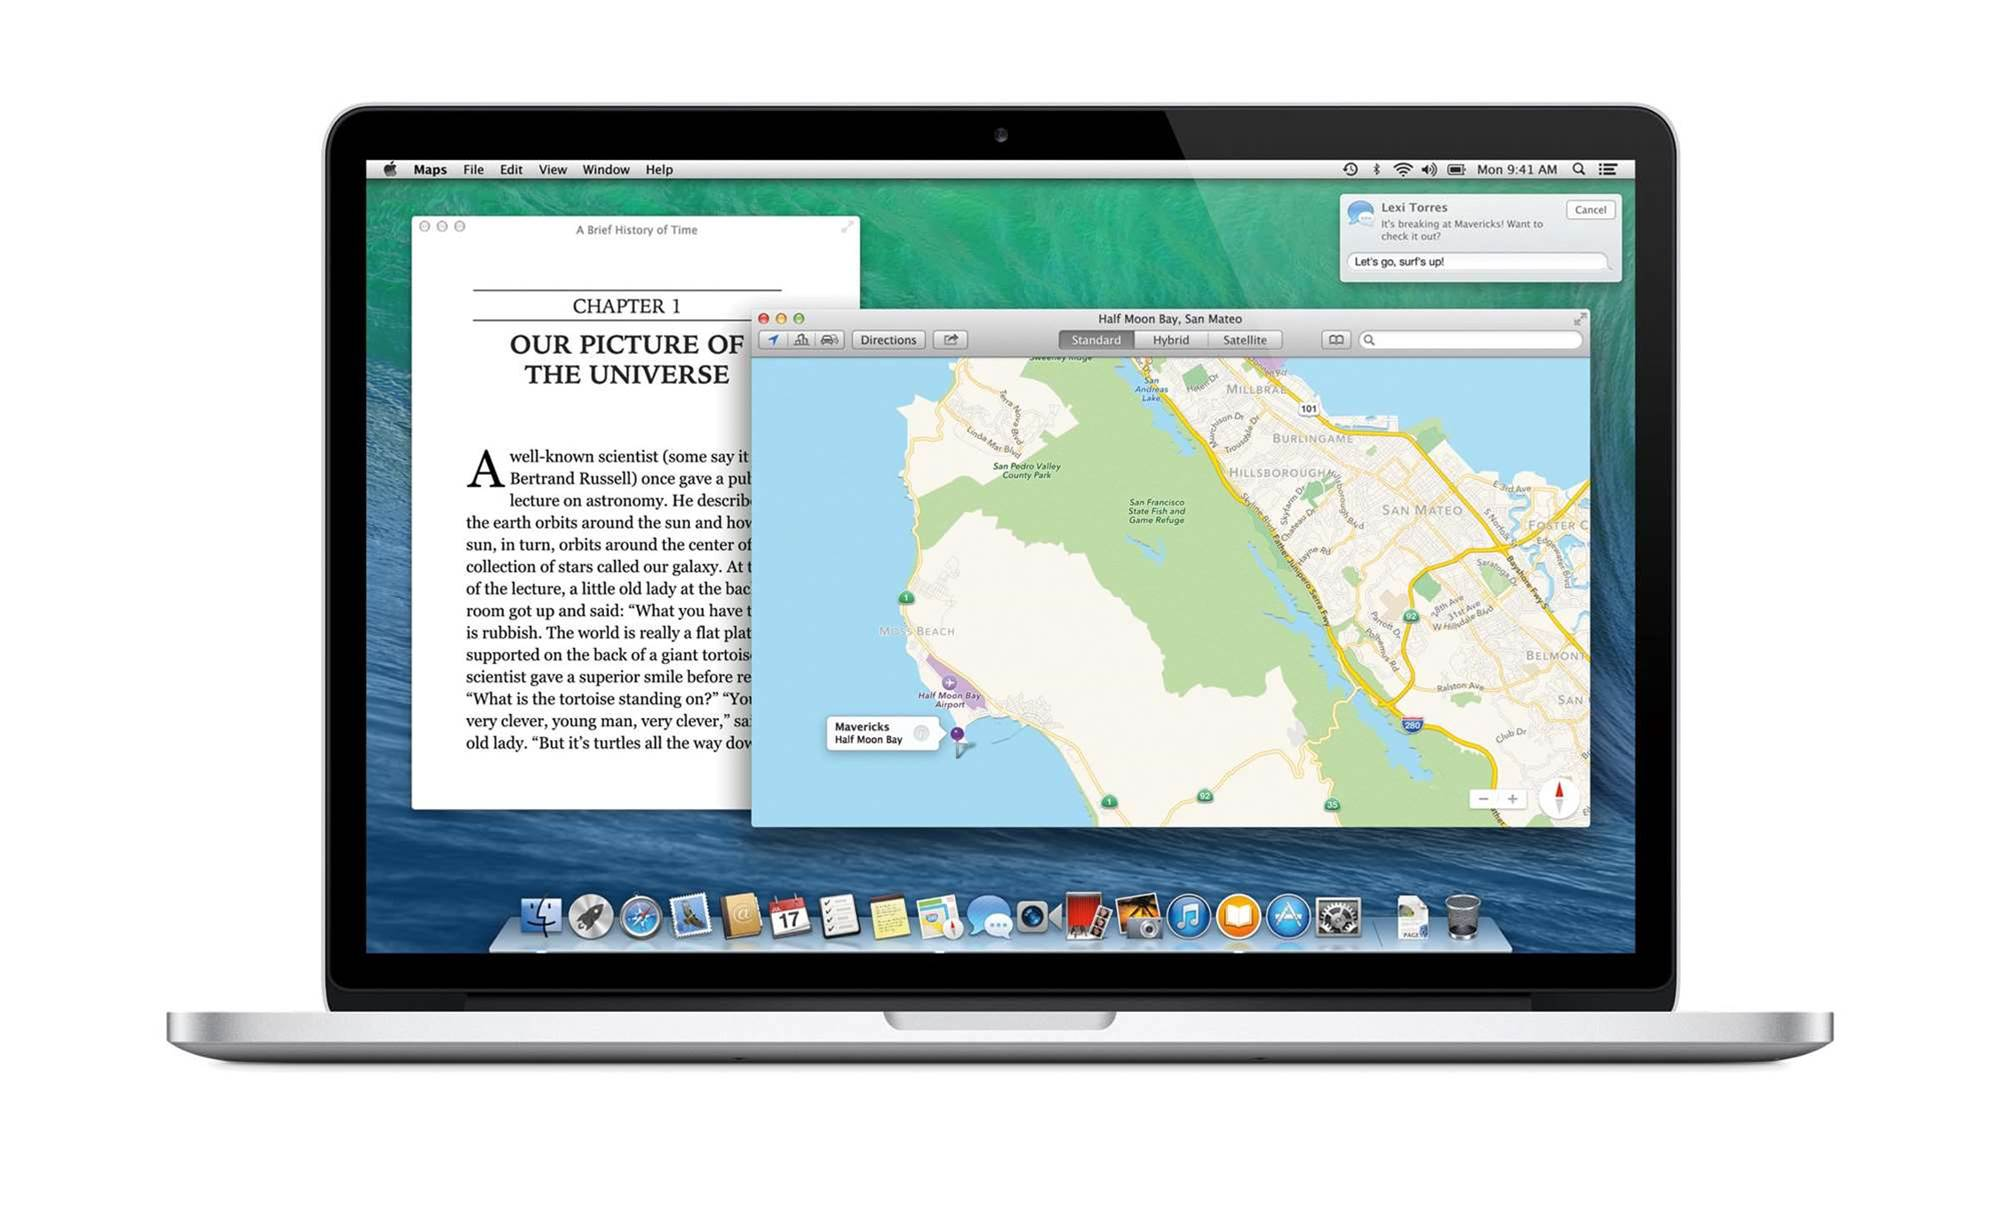 Researchers poke huge holes in OS X, iOS app security